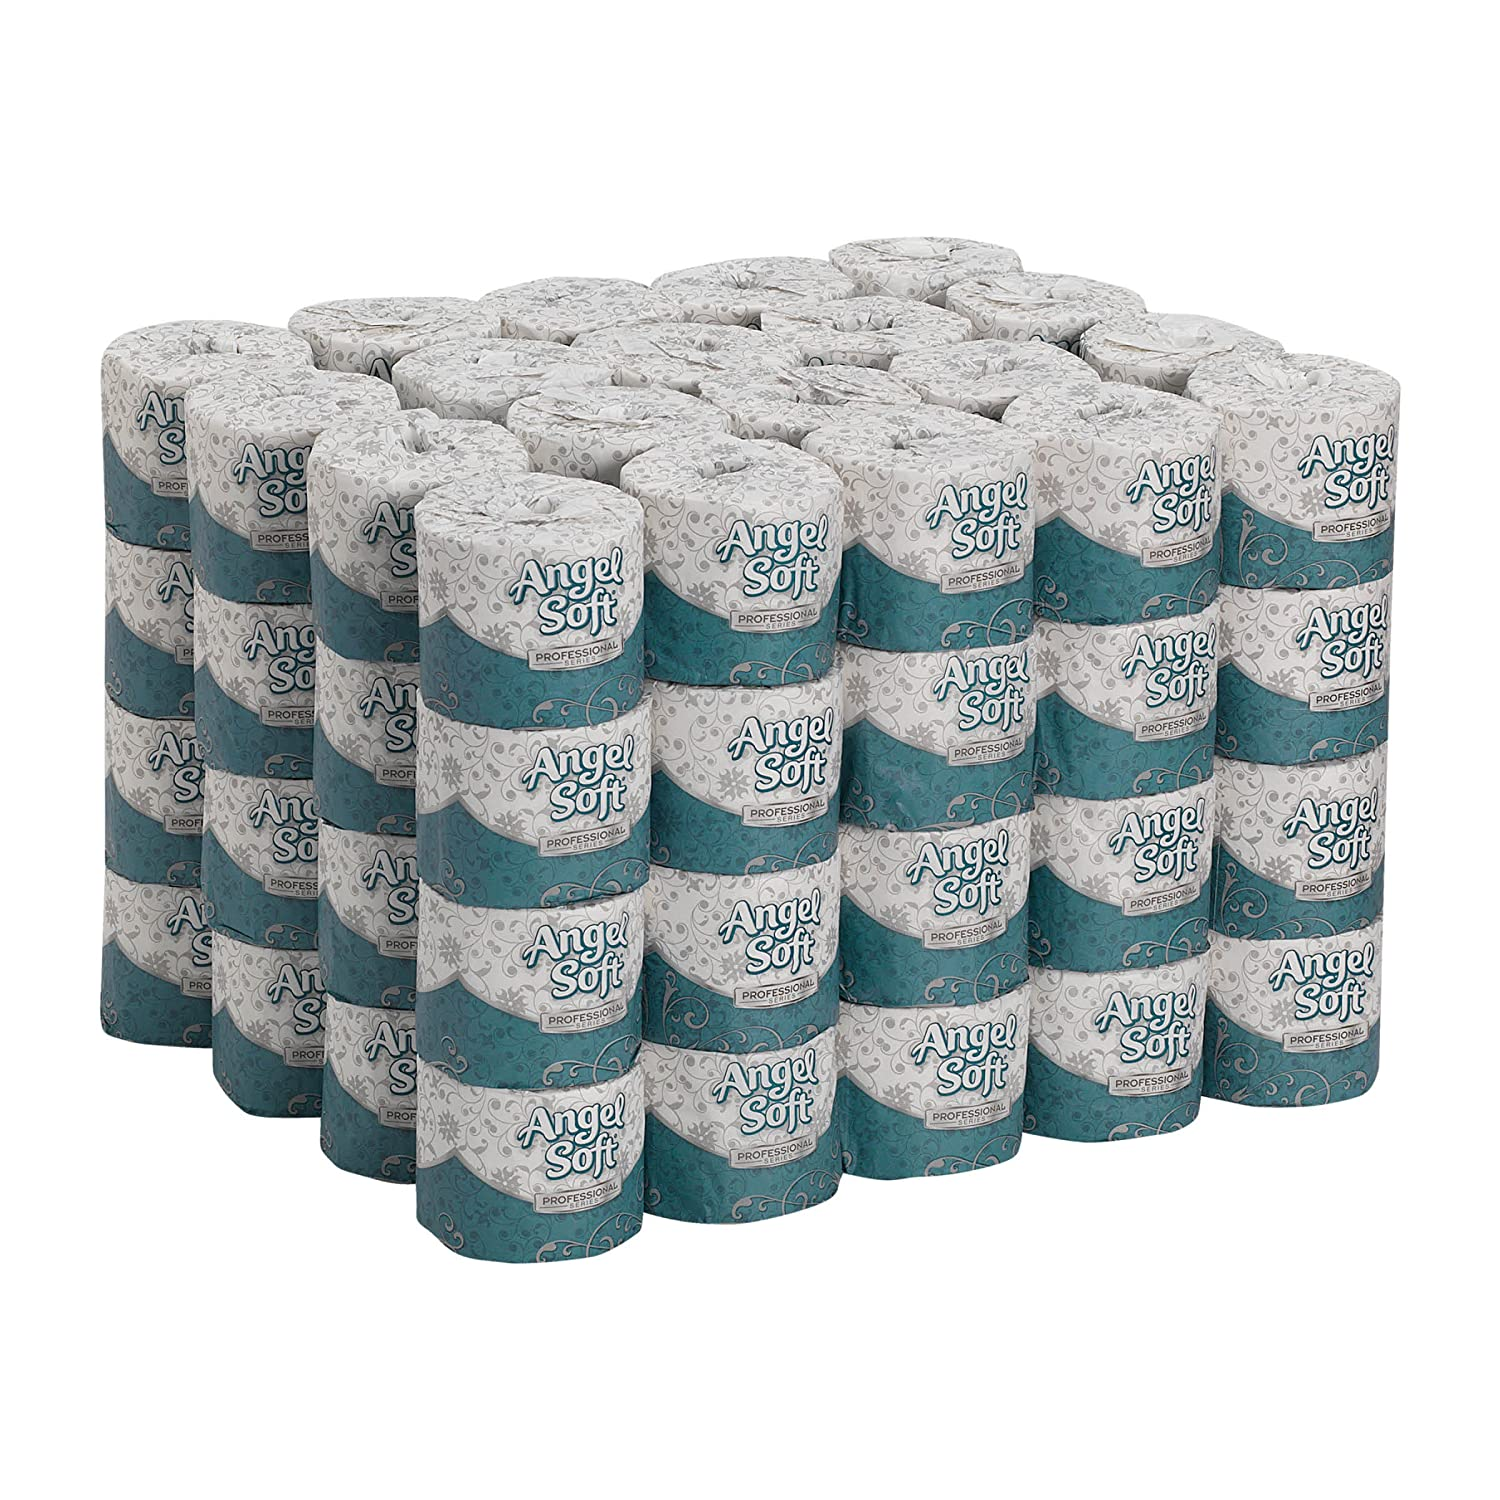 Angel Soft Professional Series Premium 2-Ply Embossed Toilet Paper by GP PRO (Georgia-Pacific), 16880, 450 Sheets Per Roll, 80 Rolls Per Case: Industrial & Scientific